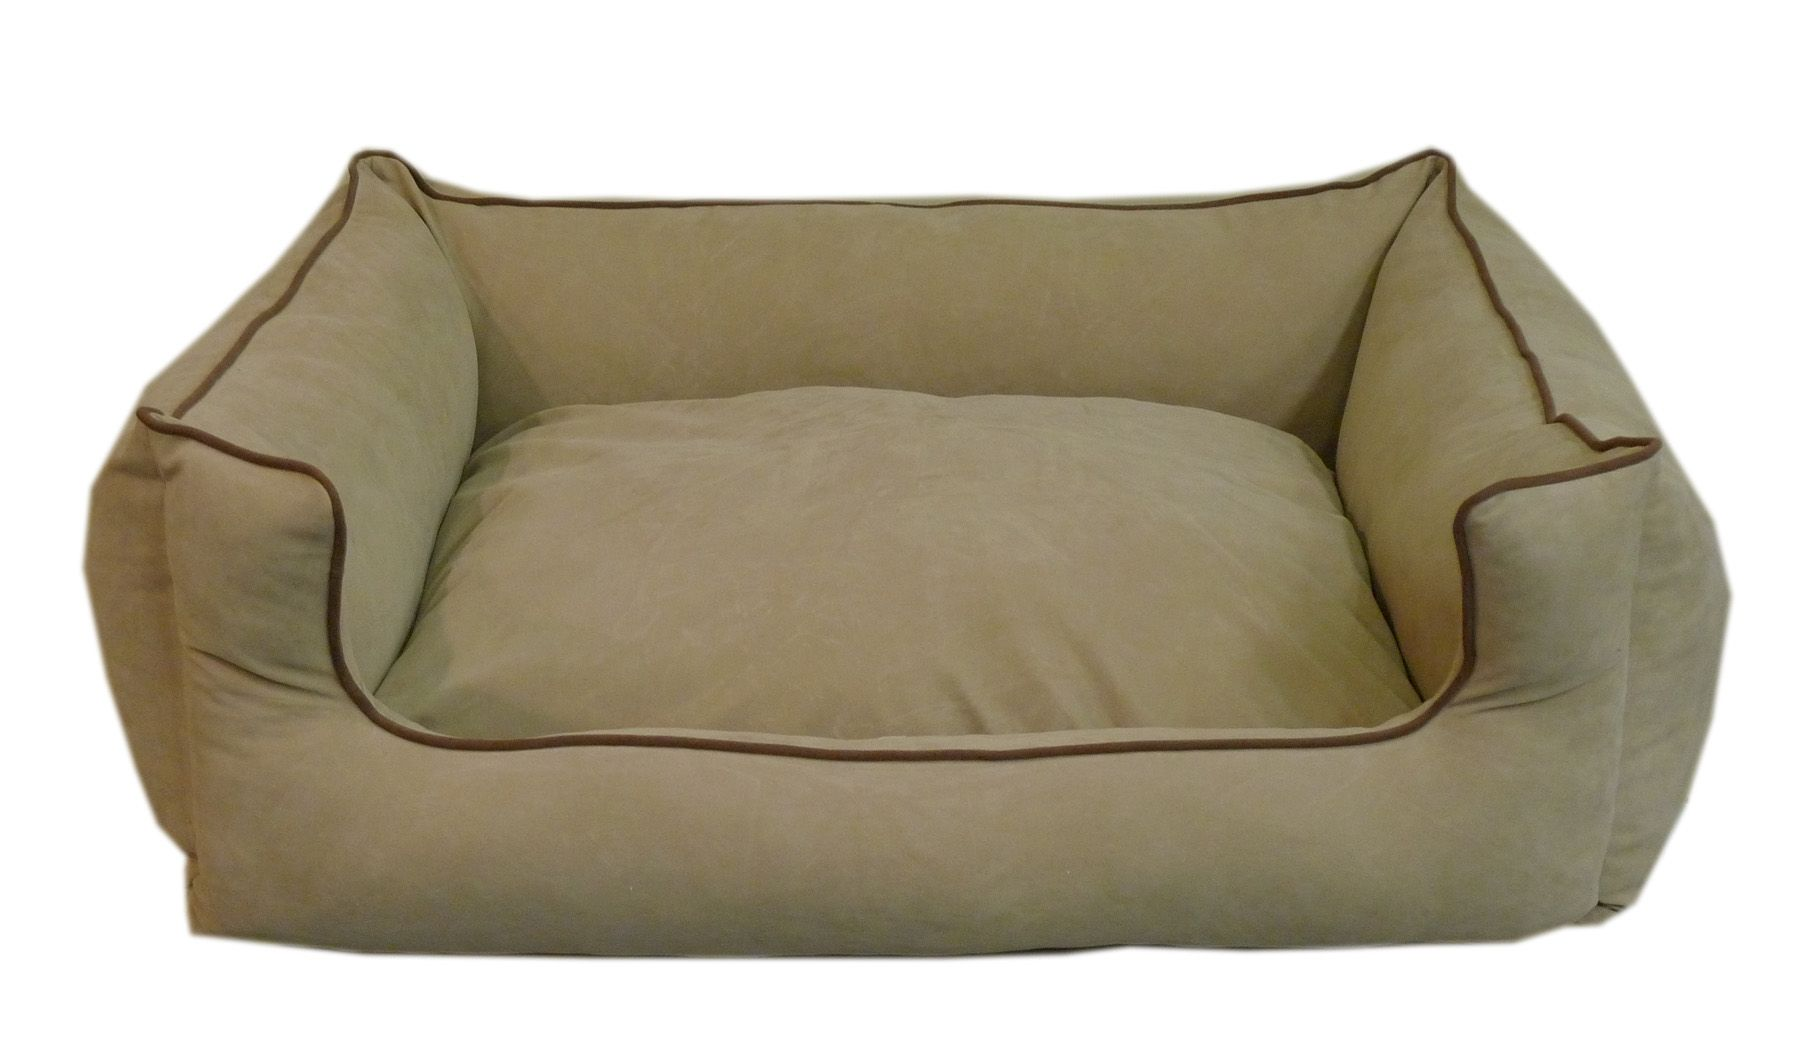 Carolina Pet Small Low Profile Kuddle Lounge - Linen